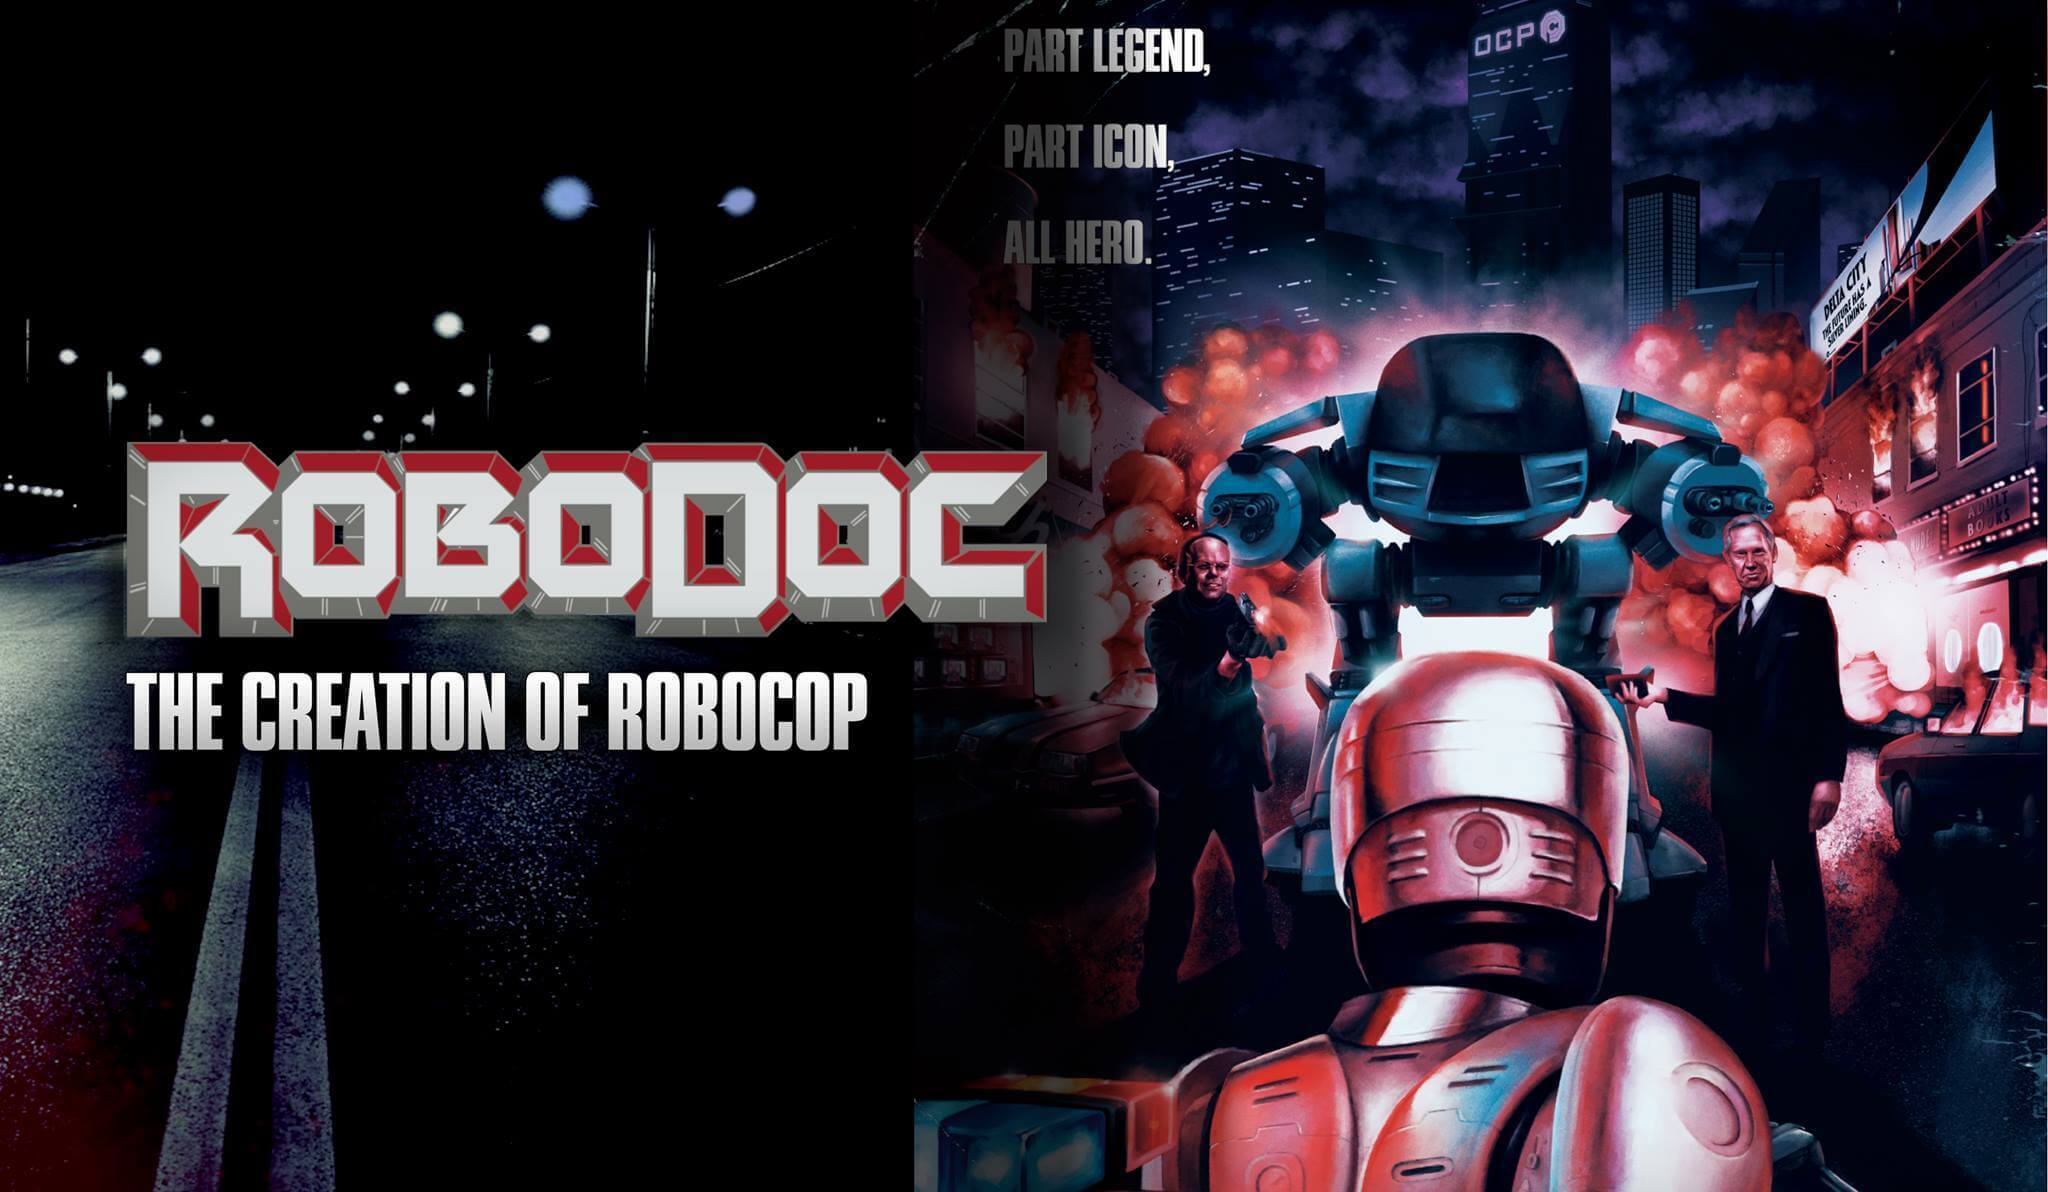 robodoc documentary film poster 1 - Stay Out of Trouble and Watch the RoboDoc: The Creation of RoboCop Trailer